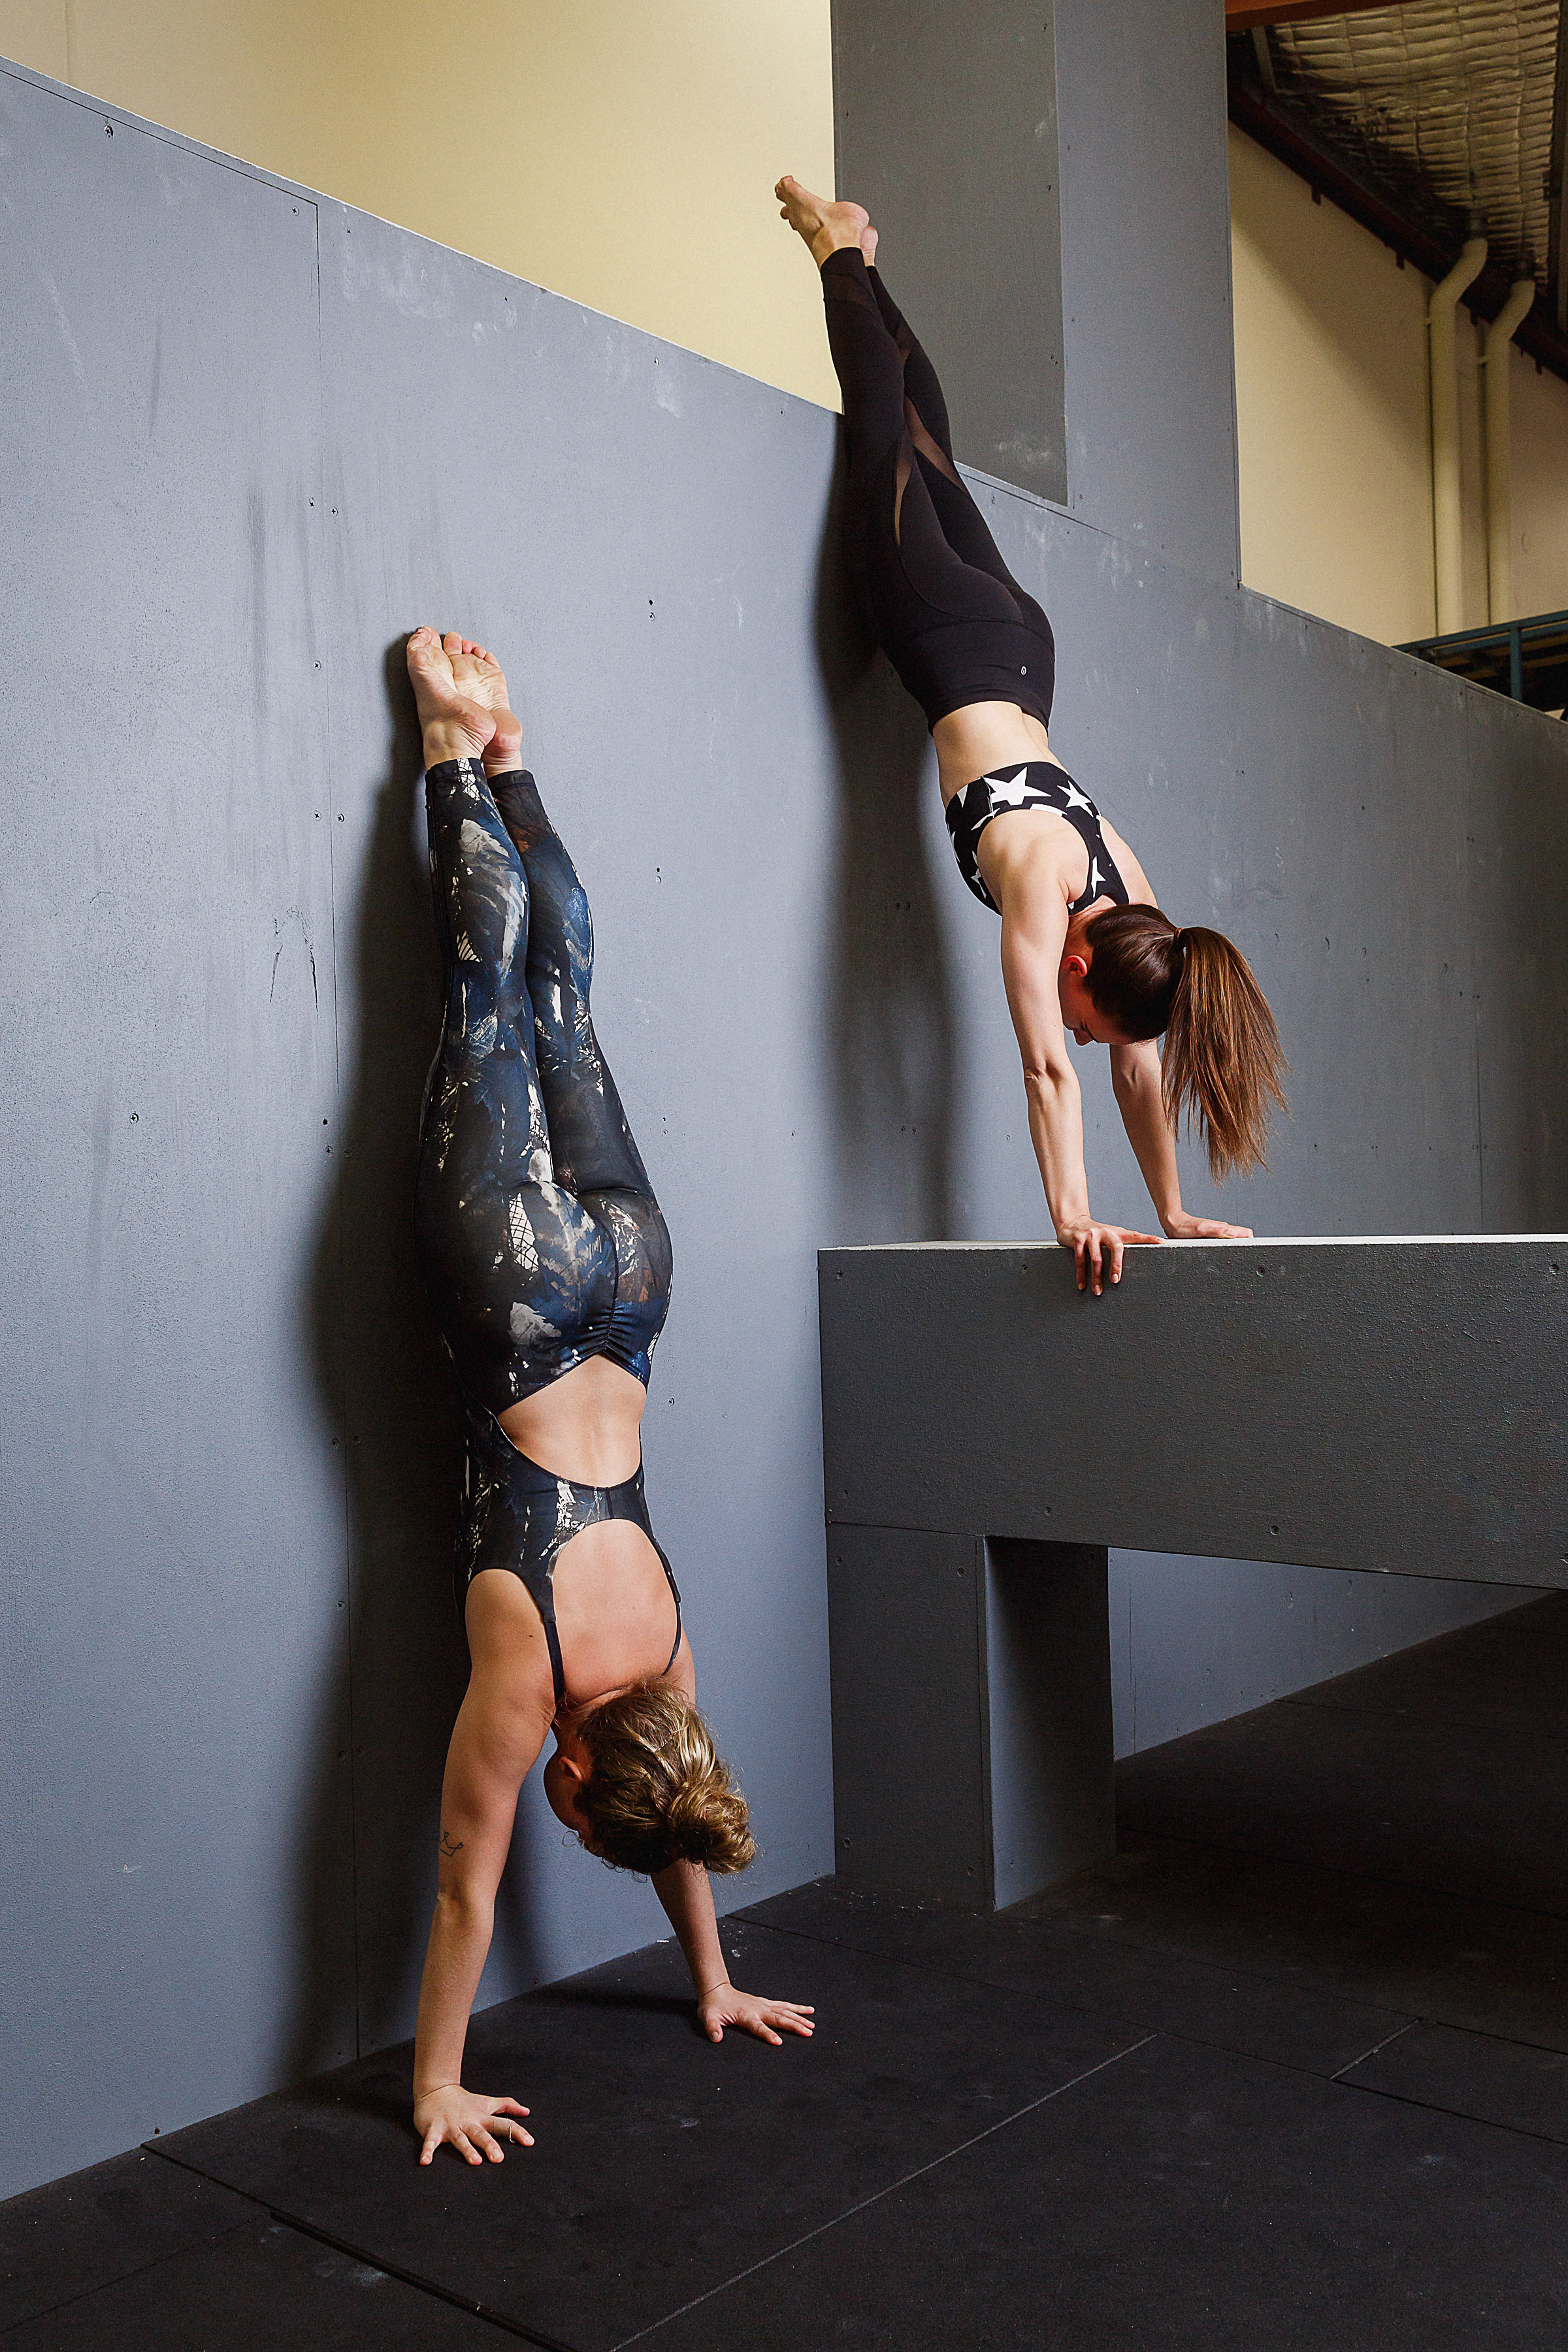 Movement co with jenelle and Mon handstands